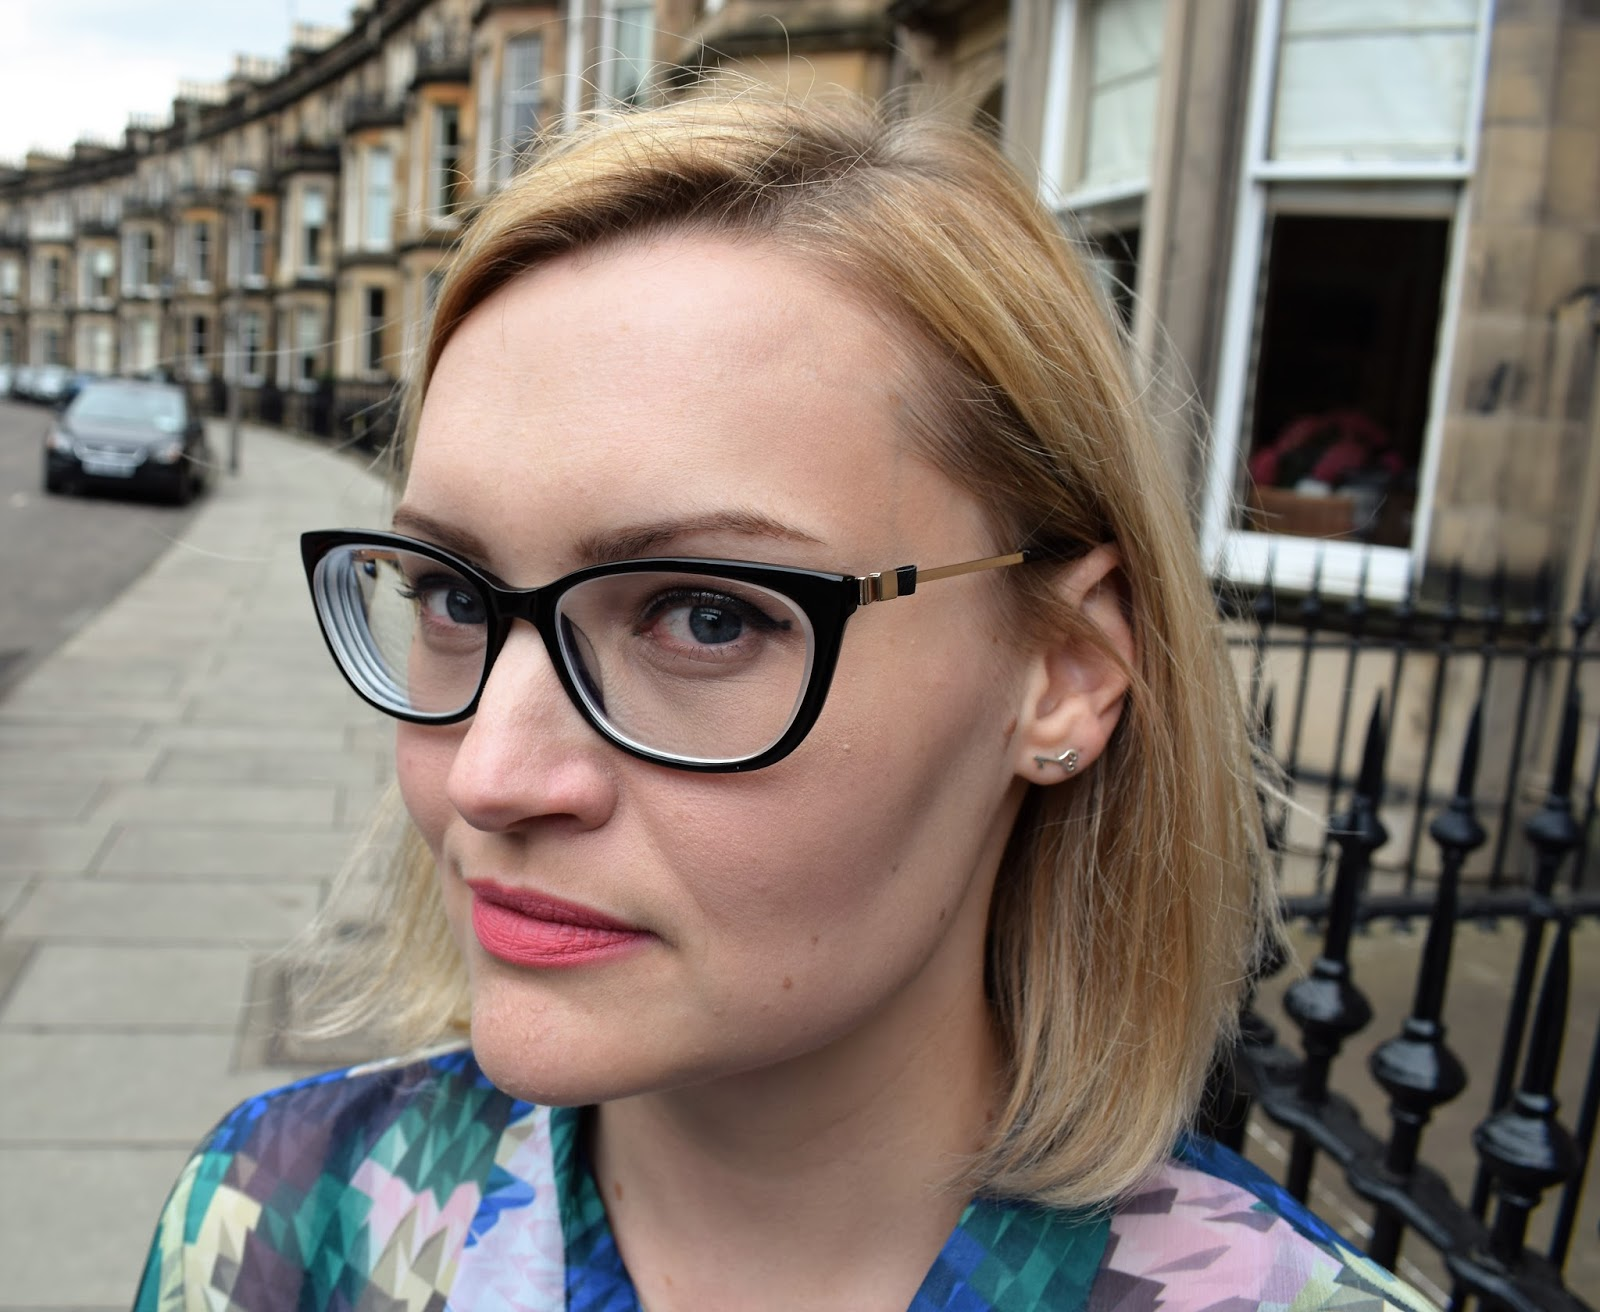 Vision Express, Heritage range glasses, exclusive brands at Vision Express, Chanel glasses dupe, Scottish blogger, fashion blogger Scotland, Karen Smith jewellery, Haymarket photo shoot location